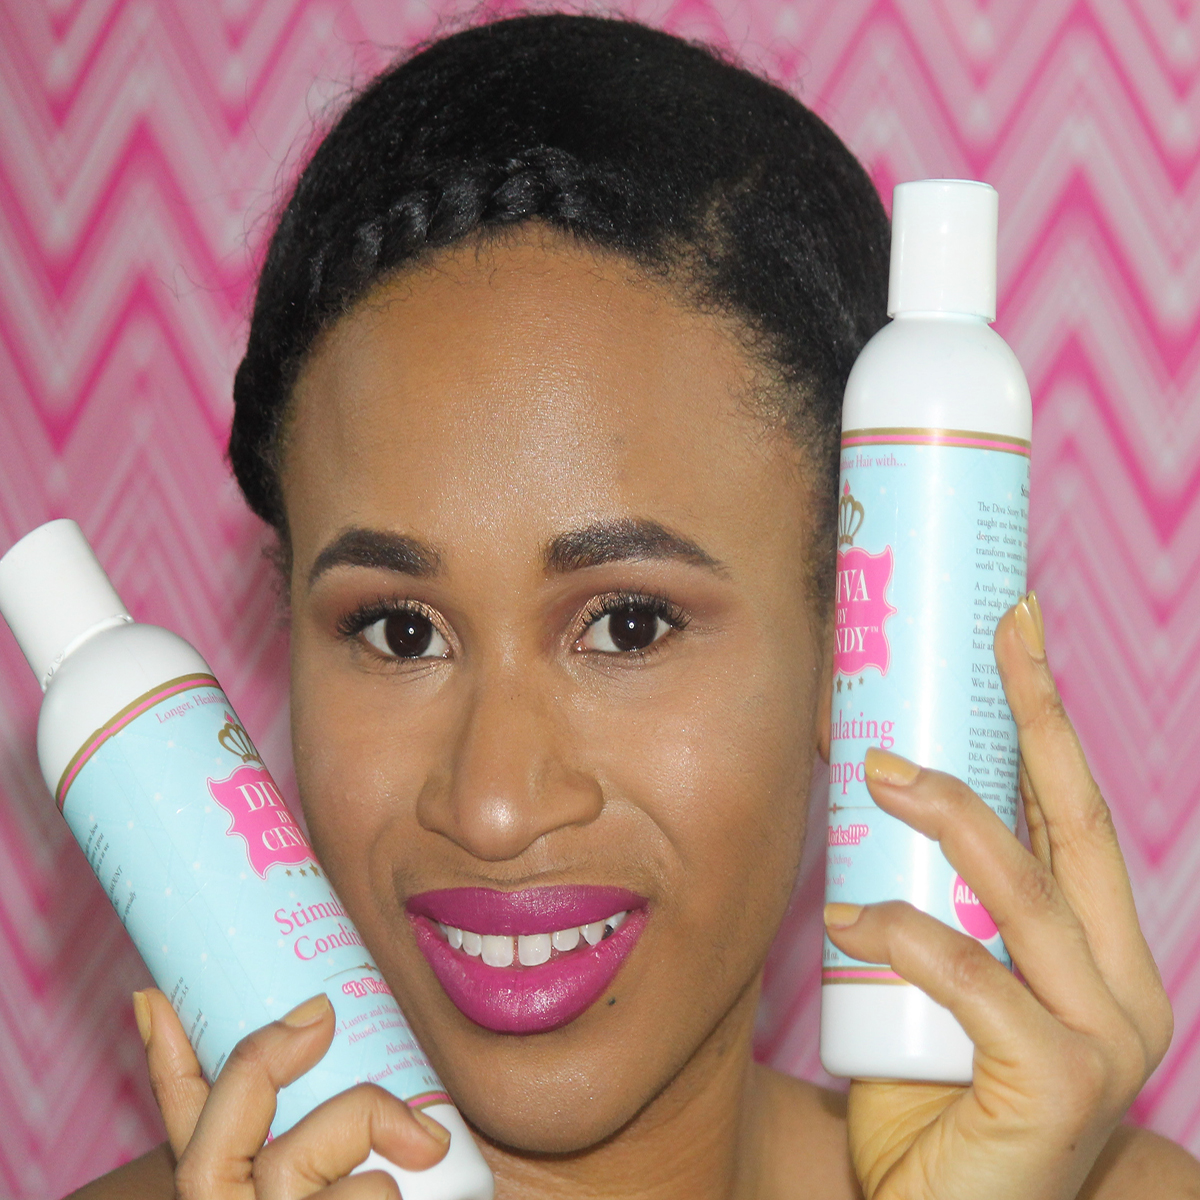 Diva by Cindy Stimulating Shampoo is definitely my favorite product from the line.